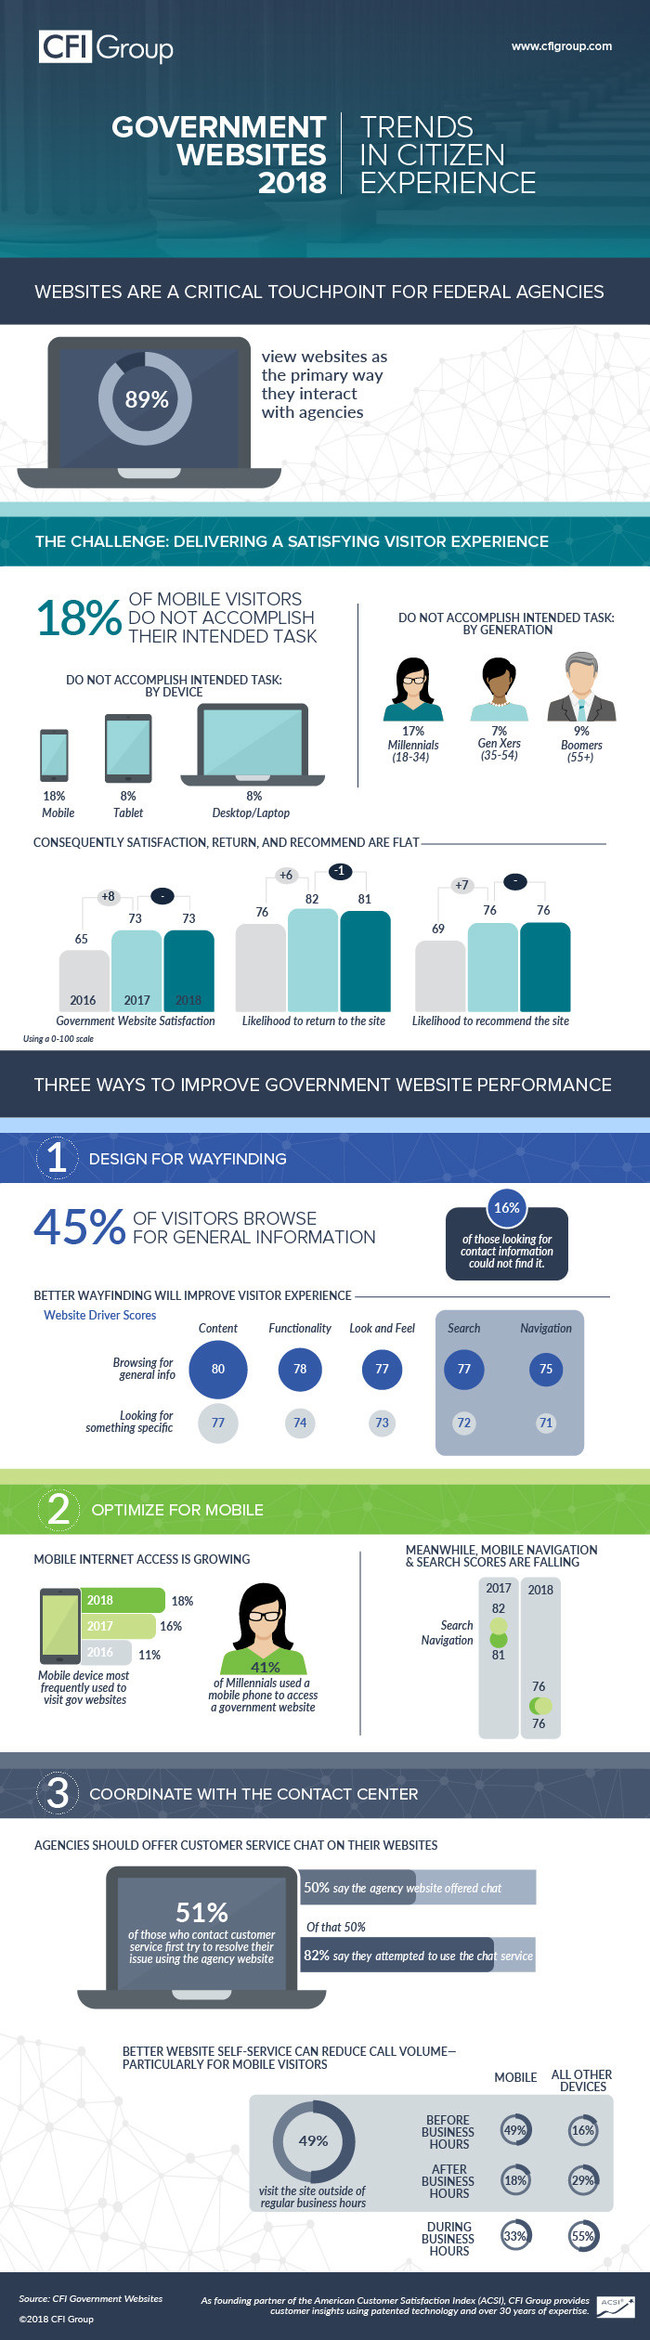 CFI Group Government Websites 2018 Infographic